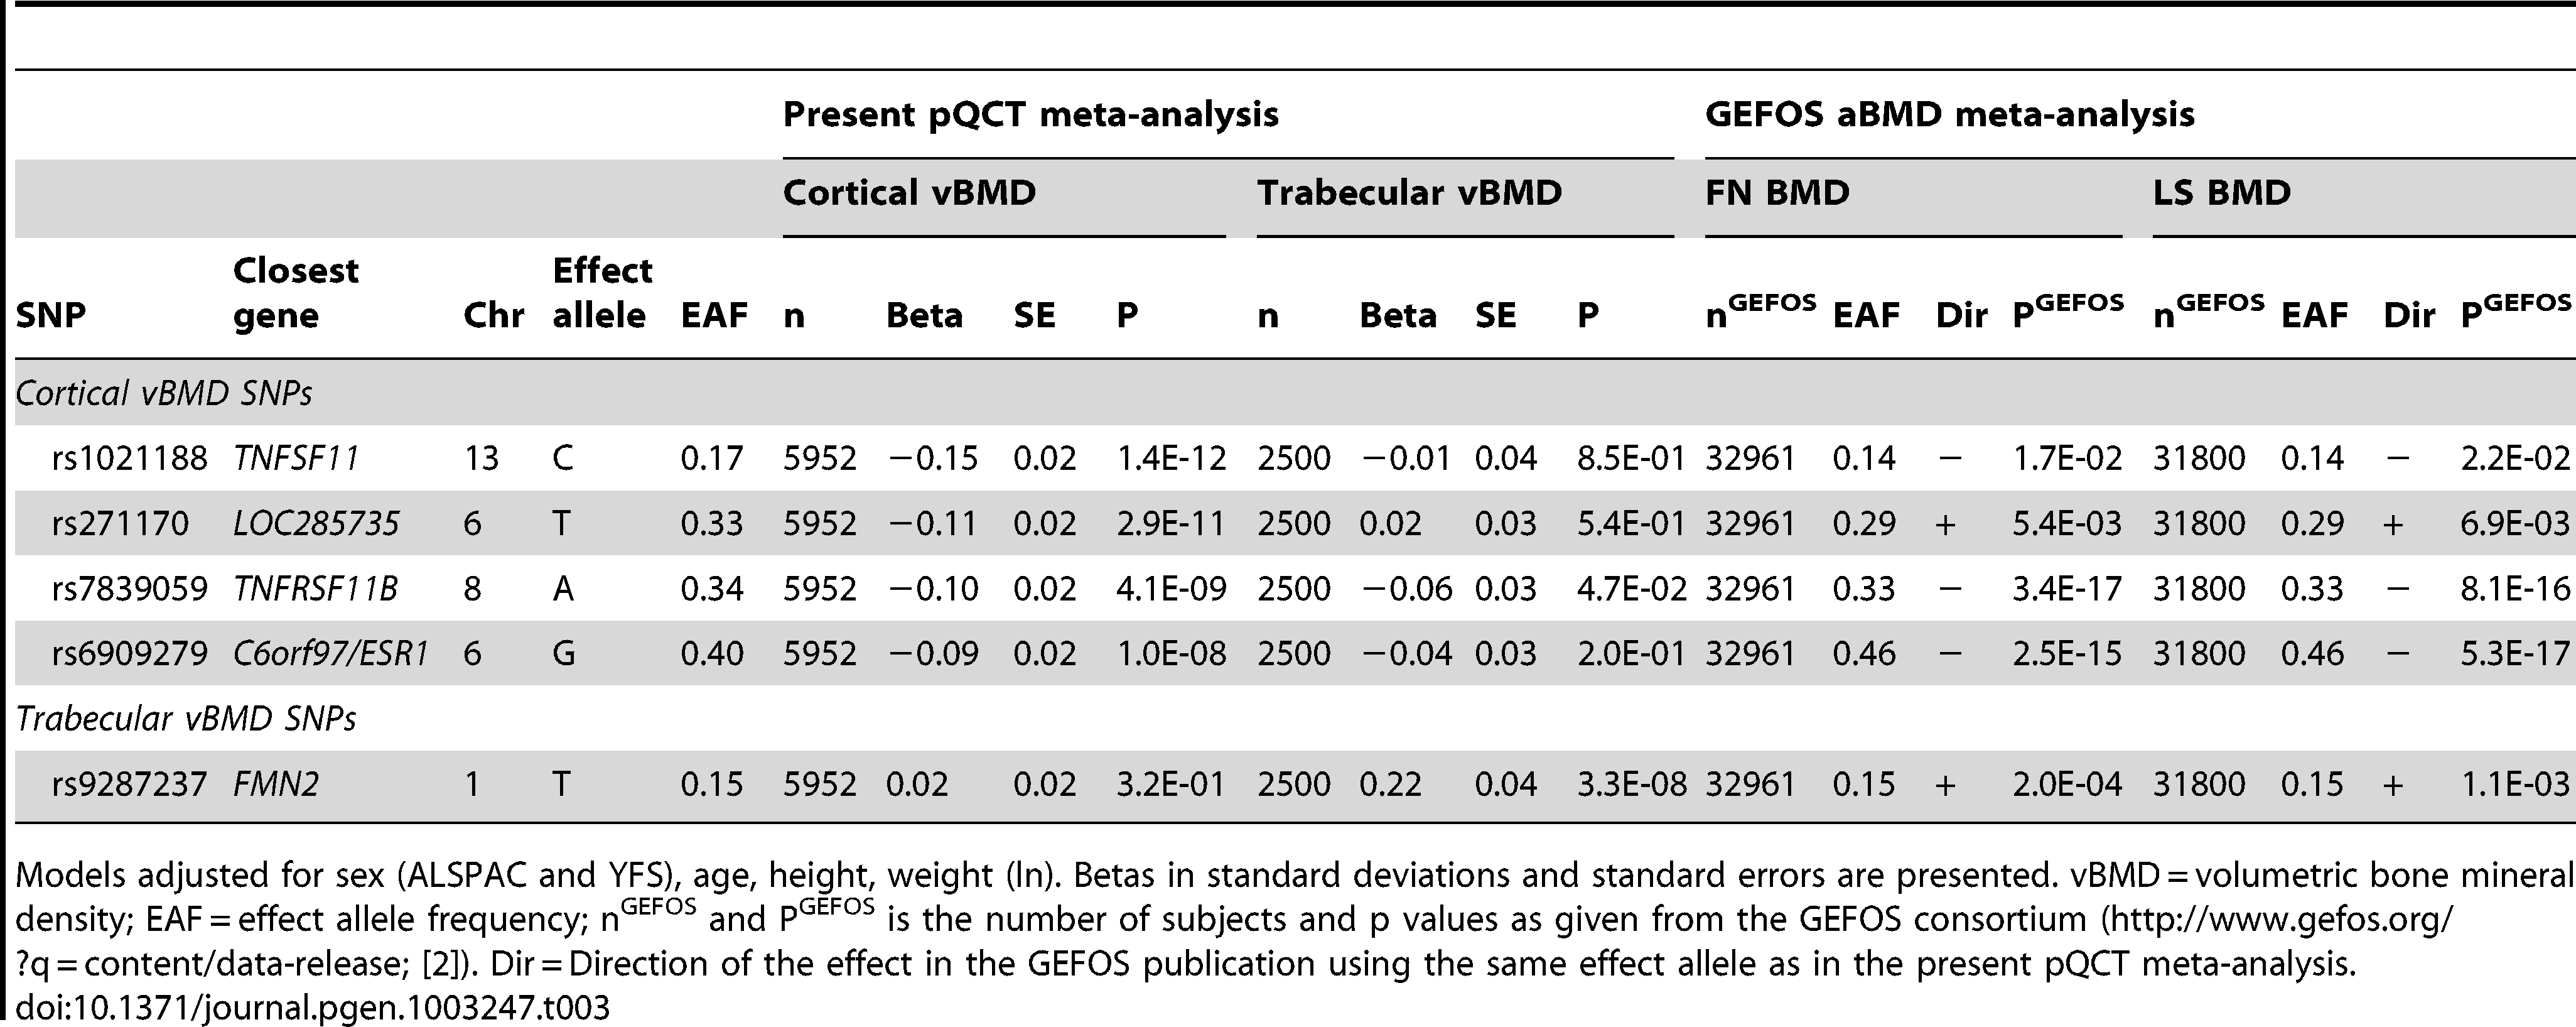 Association of cortical and trabecular vBMD with top cortical and trabecular vBMD SNPs.